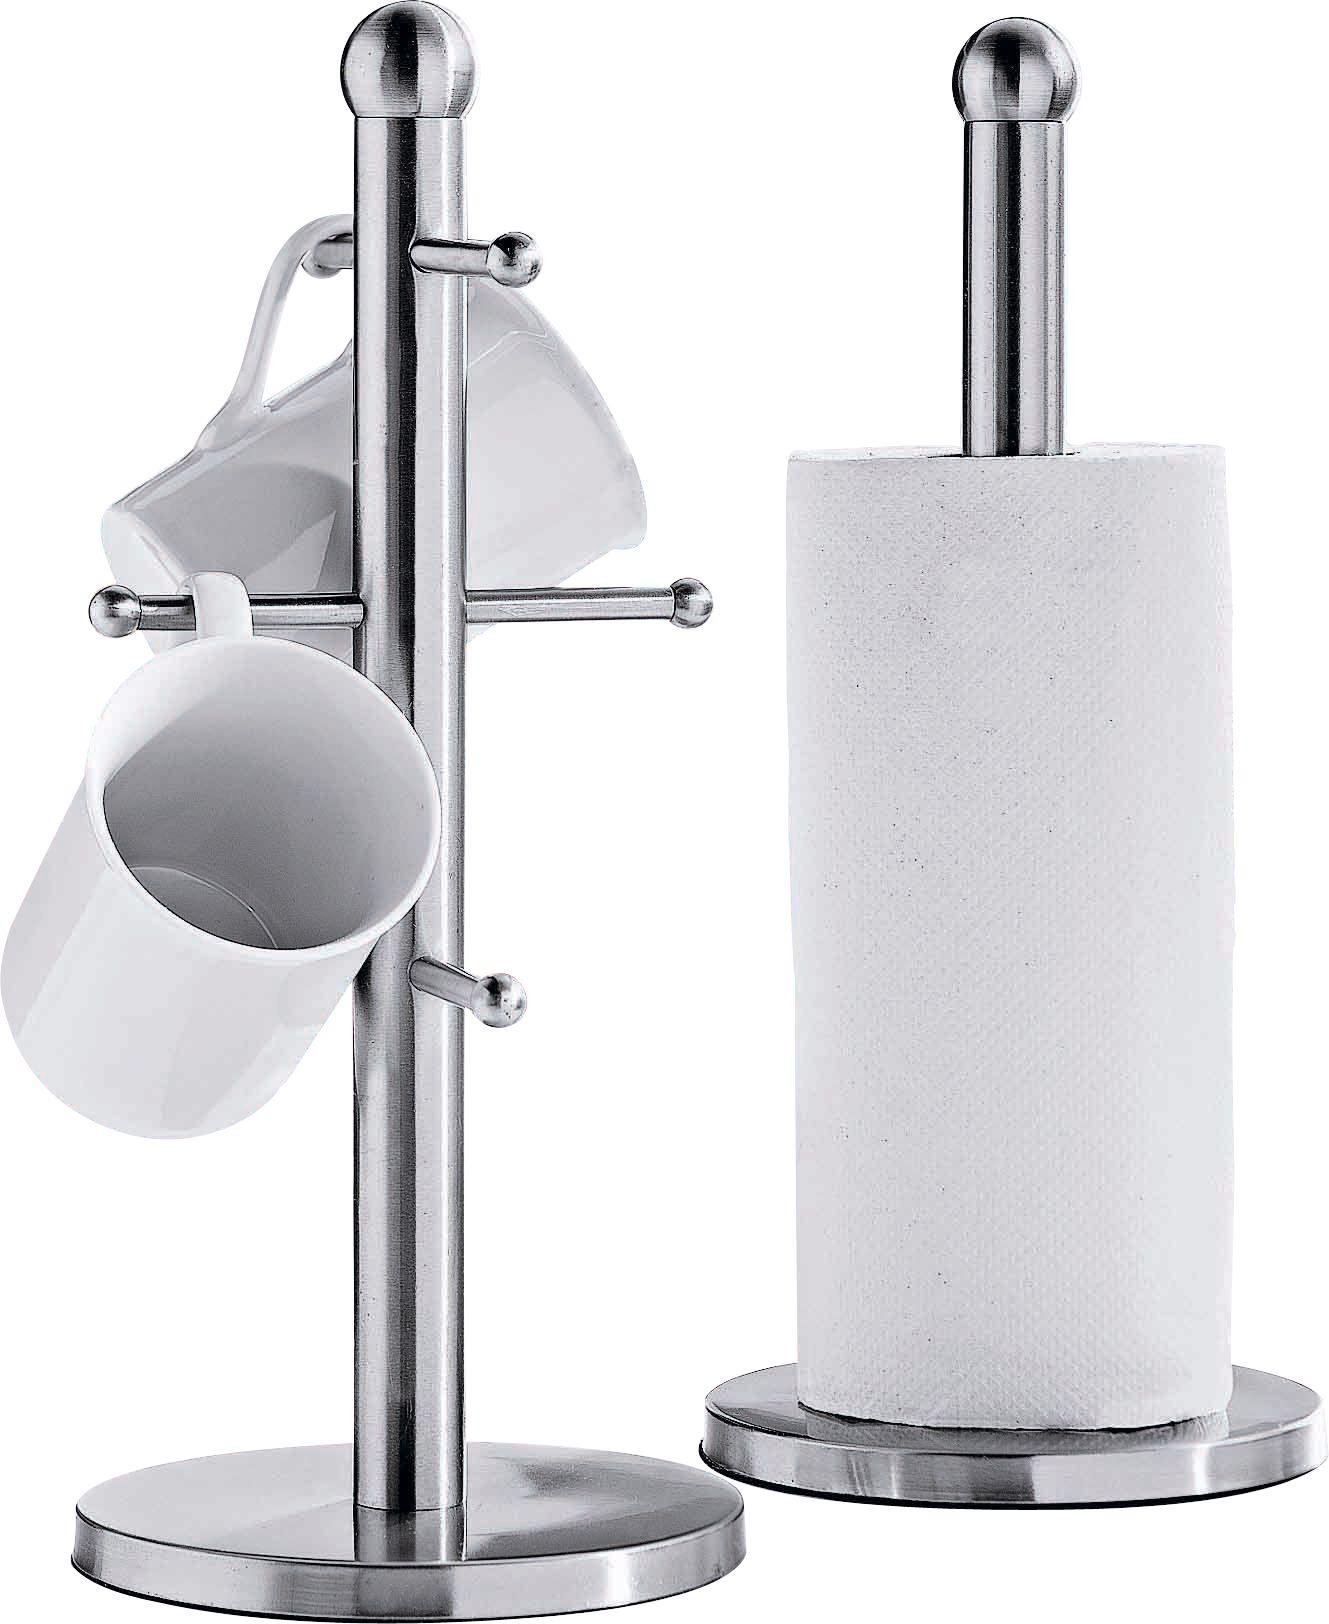 Buy HOME Satin Stainless Steel Mug TreeKitchen Towel Holder Set